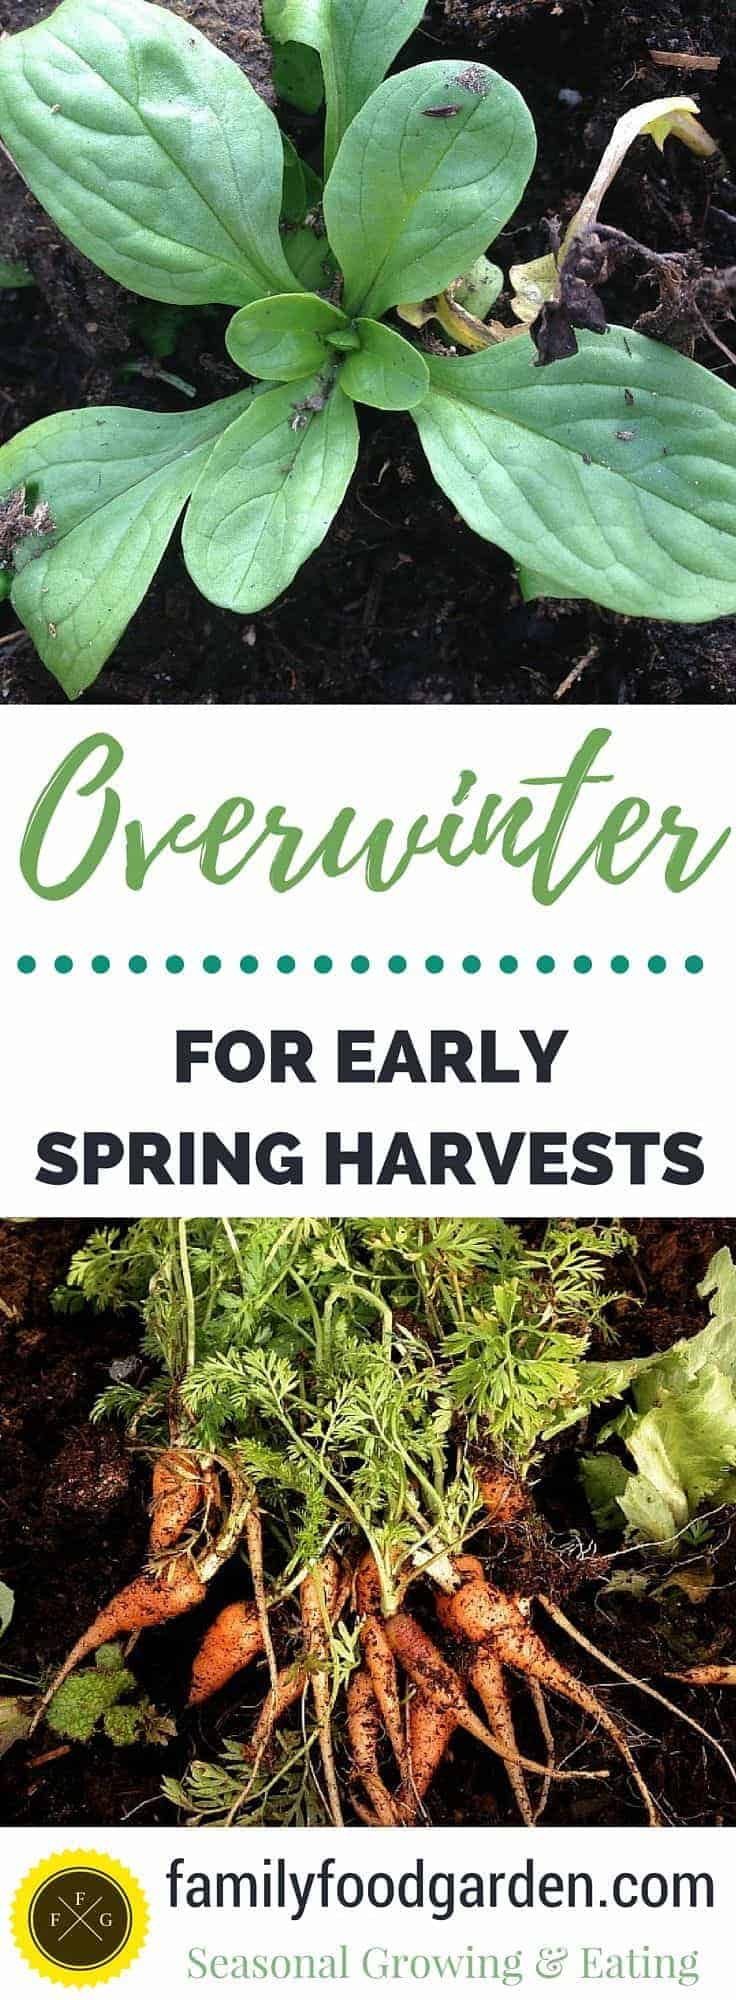 Plan for early spring harvests! Great list of crops to overwinter for zone 5.